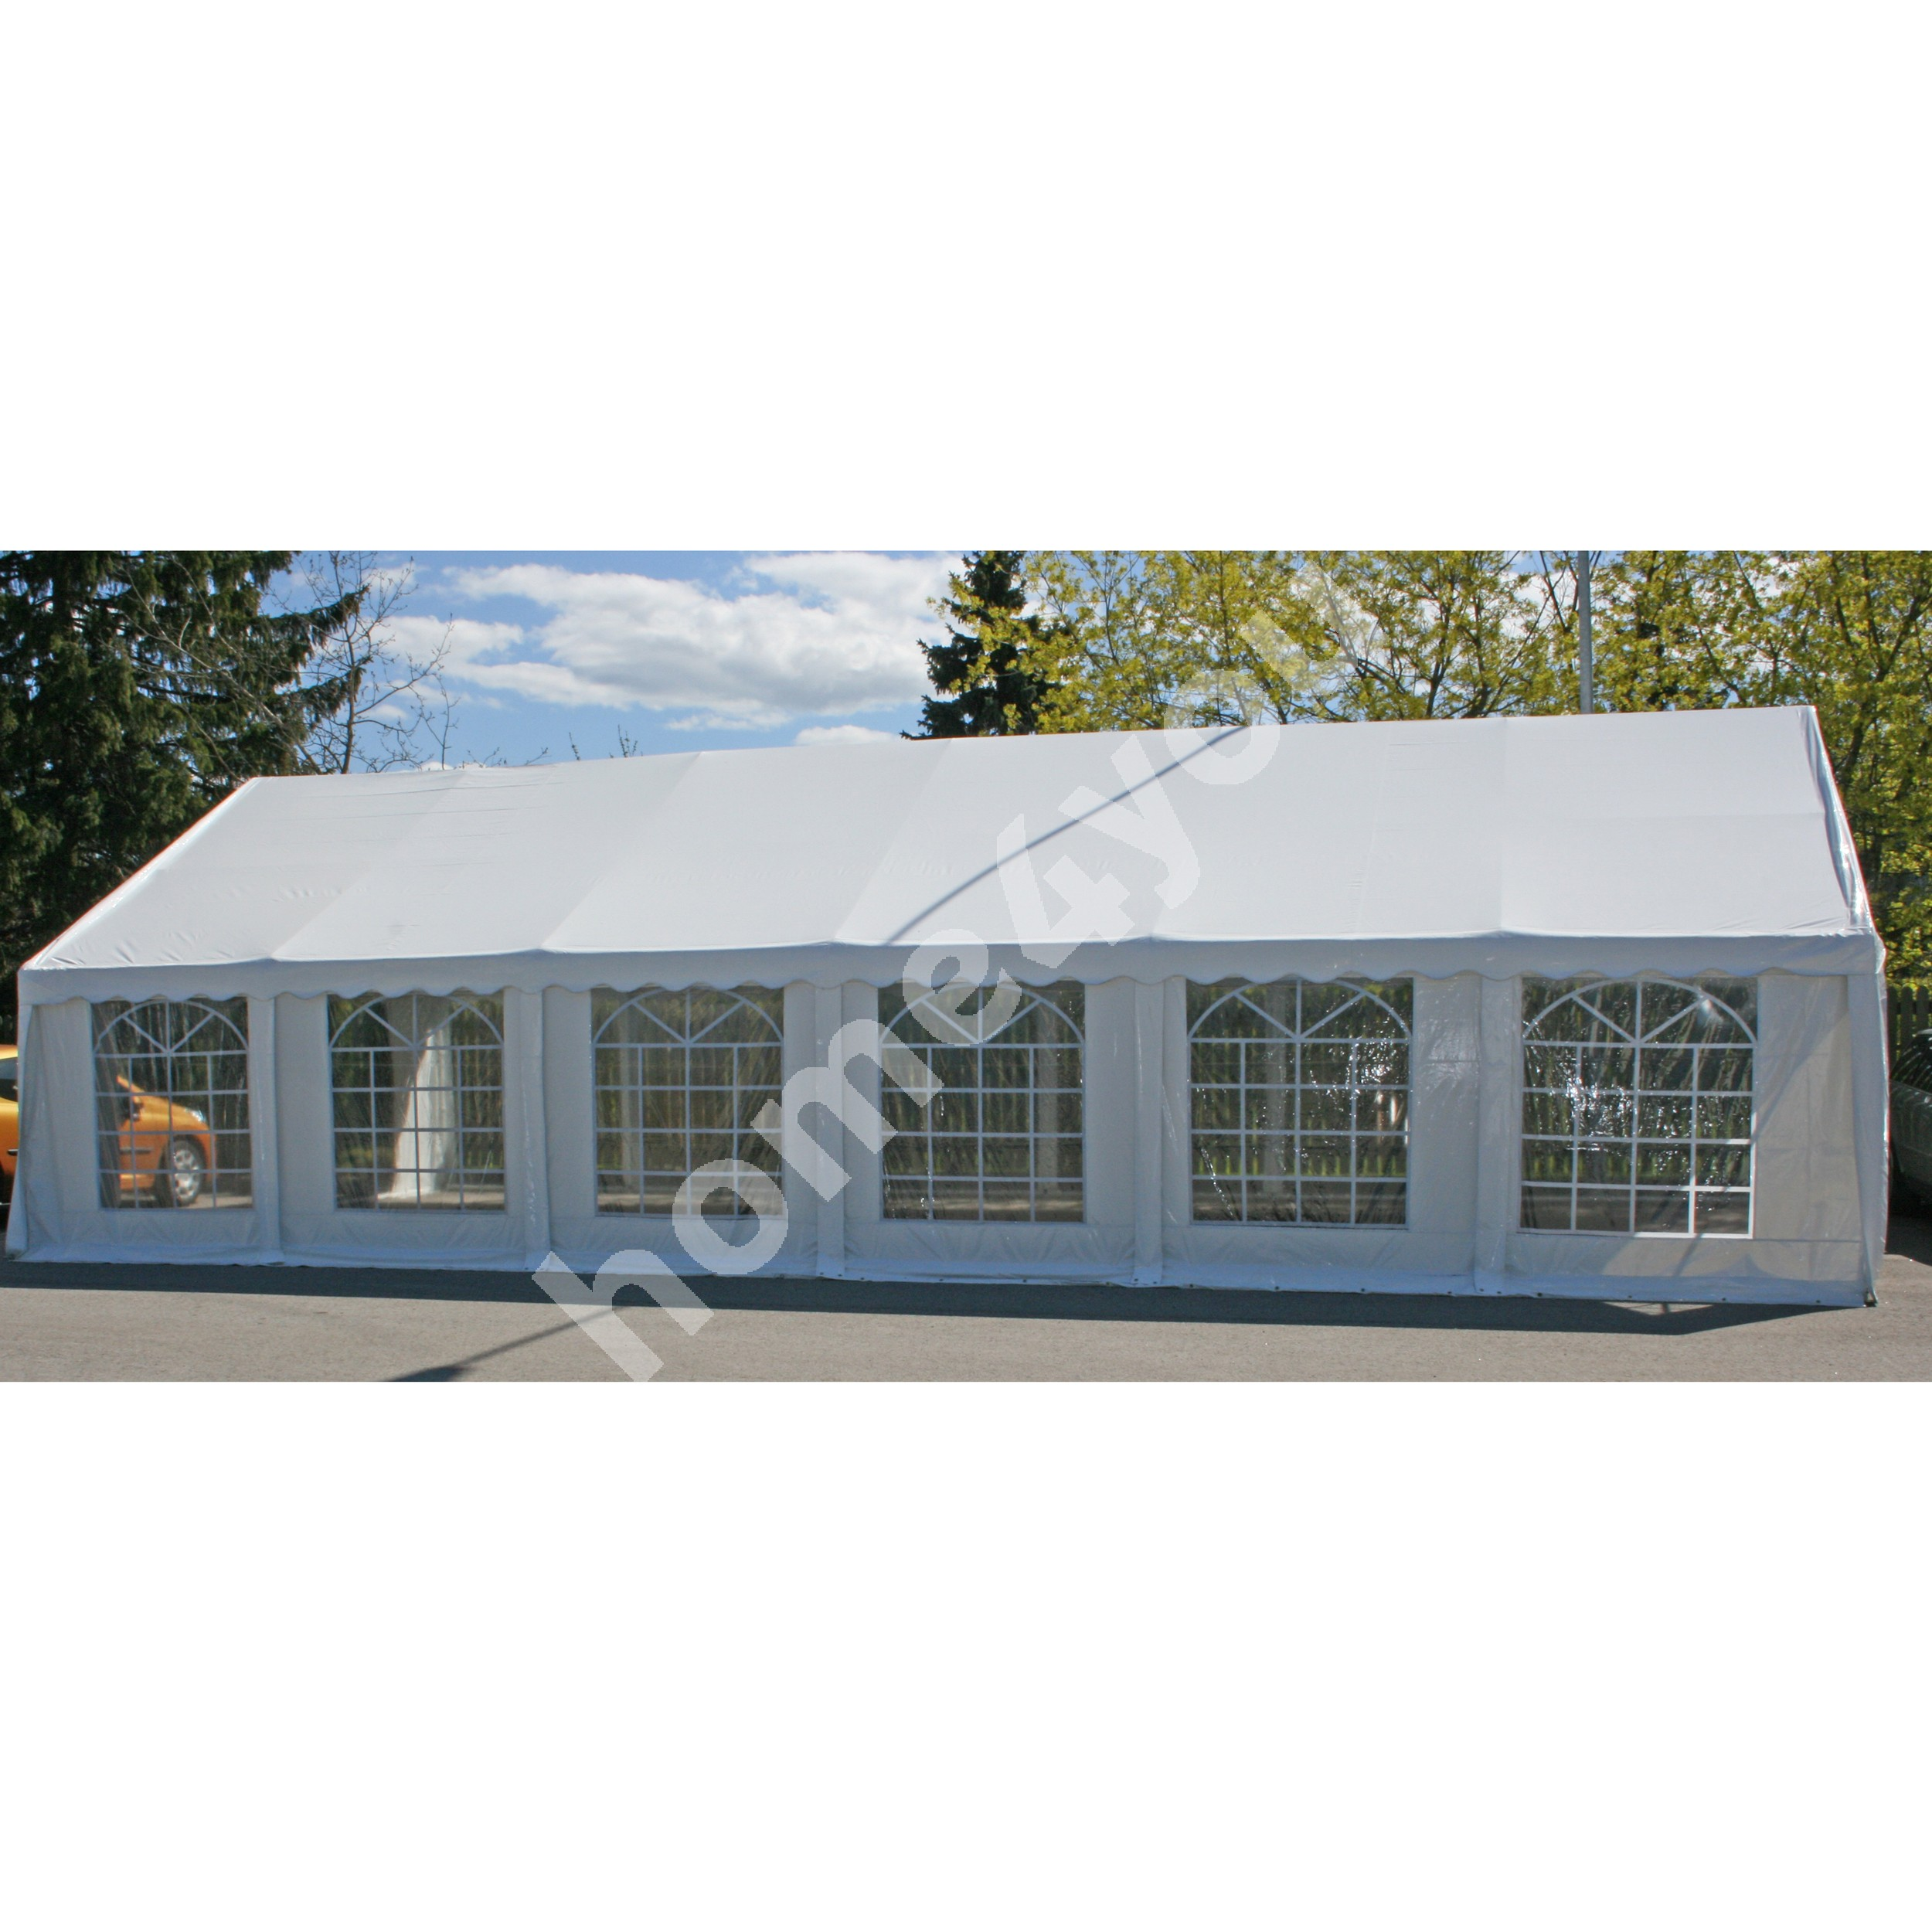 Party tent 6x12m, steel frame, cover: polyethylene, color: white